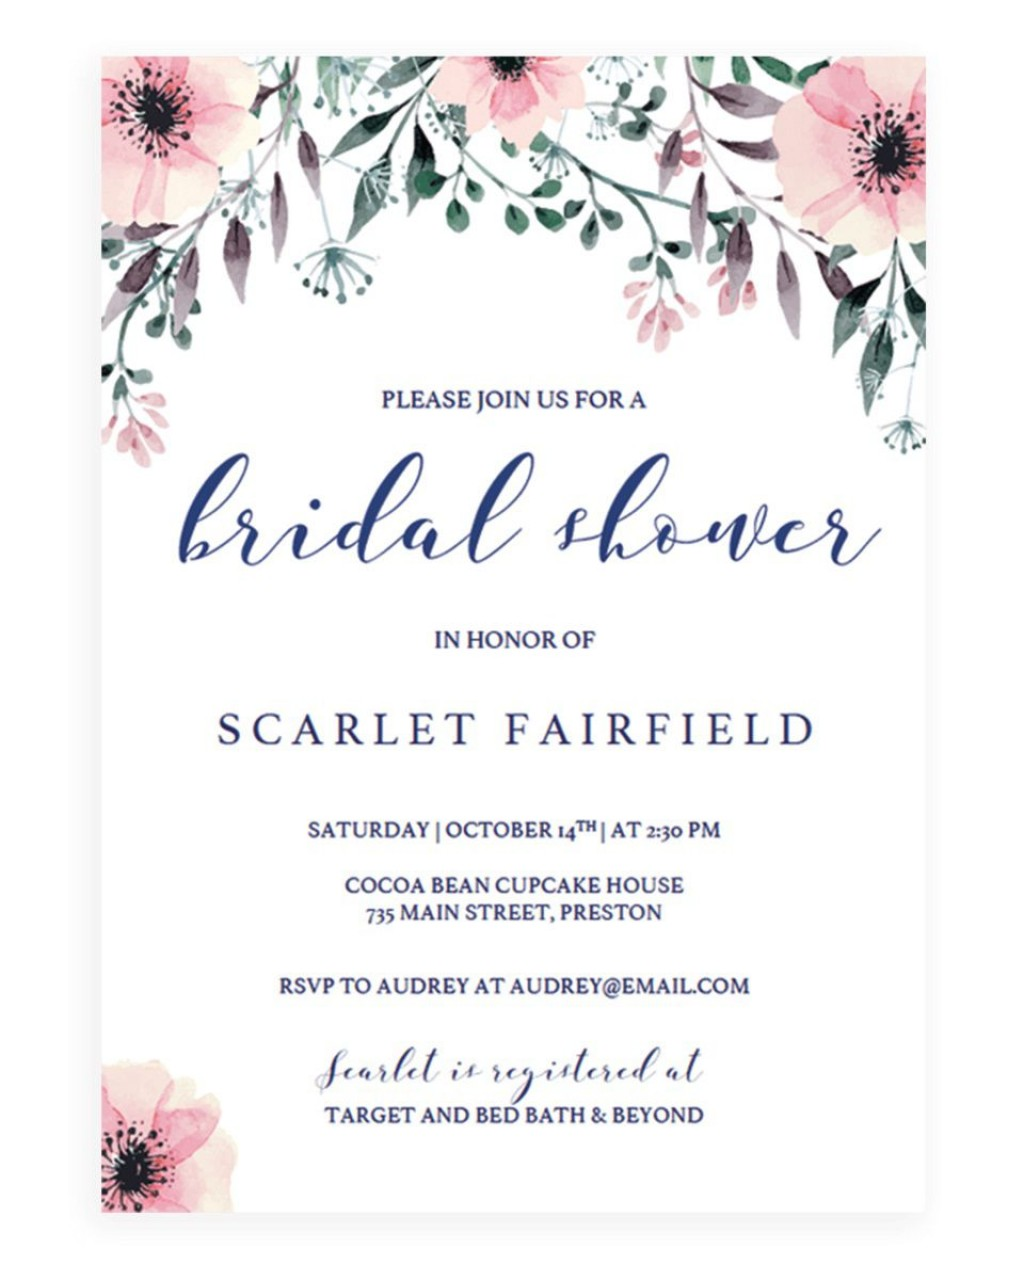 007 Simple Wedding Shower Invitation Template Photo  Templates Bridal Pinterest Microsoft Word Free ForLarge